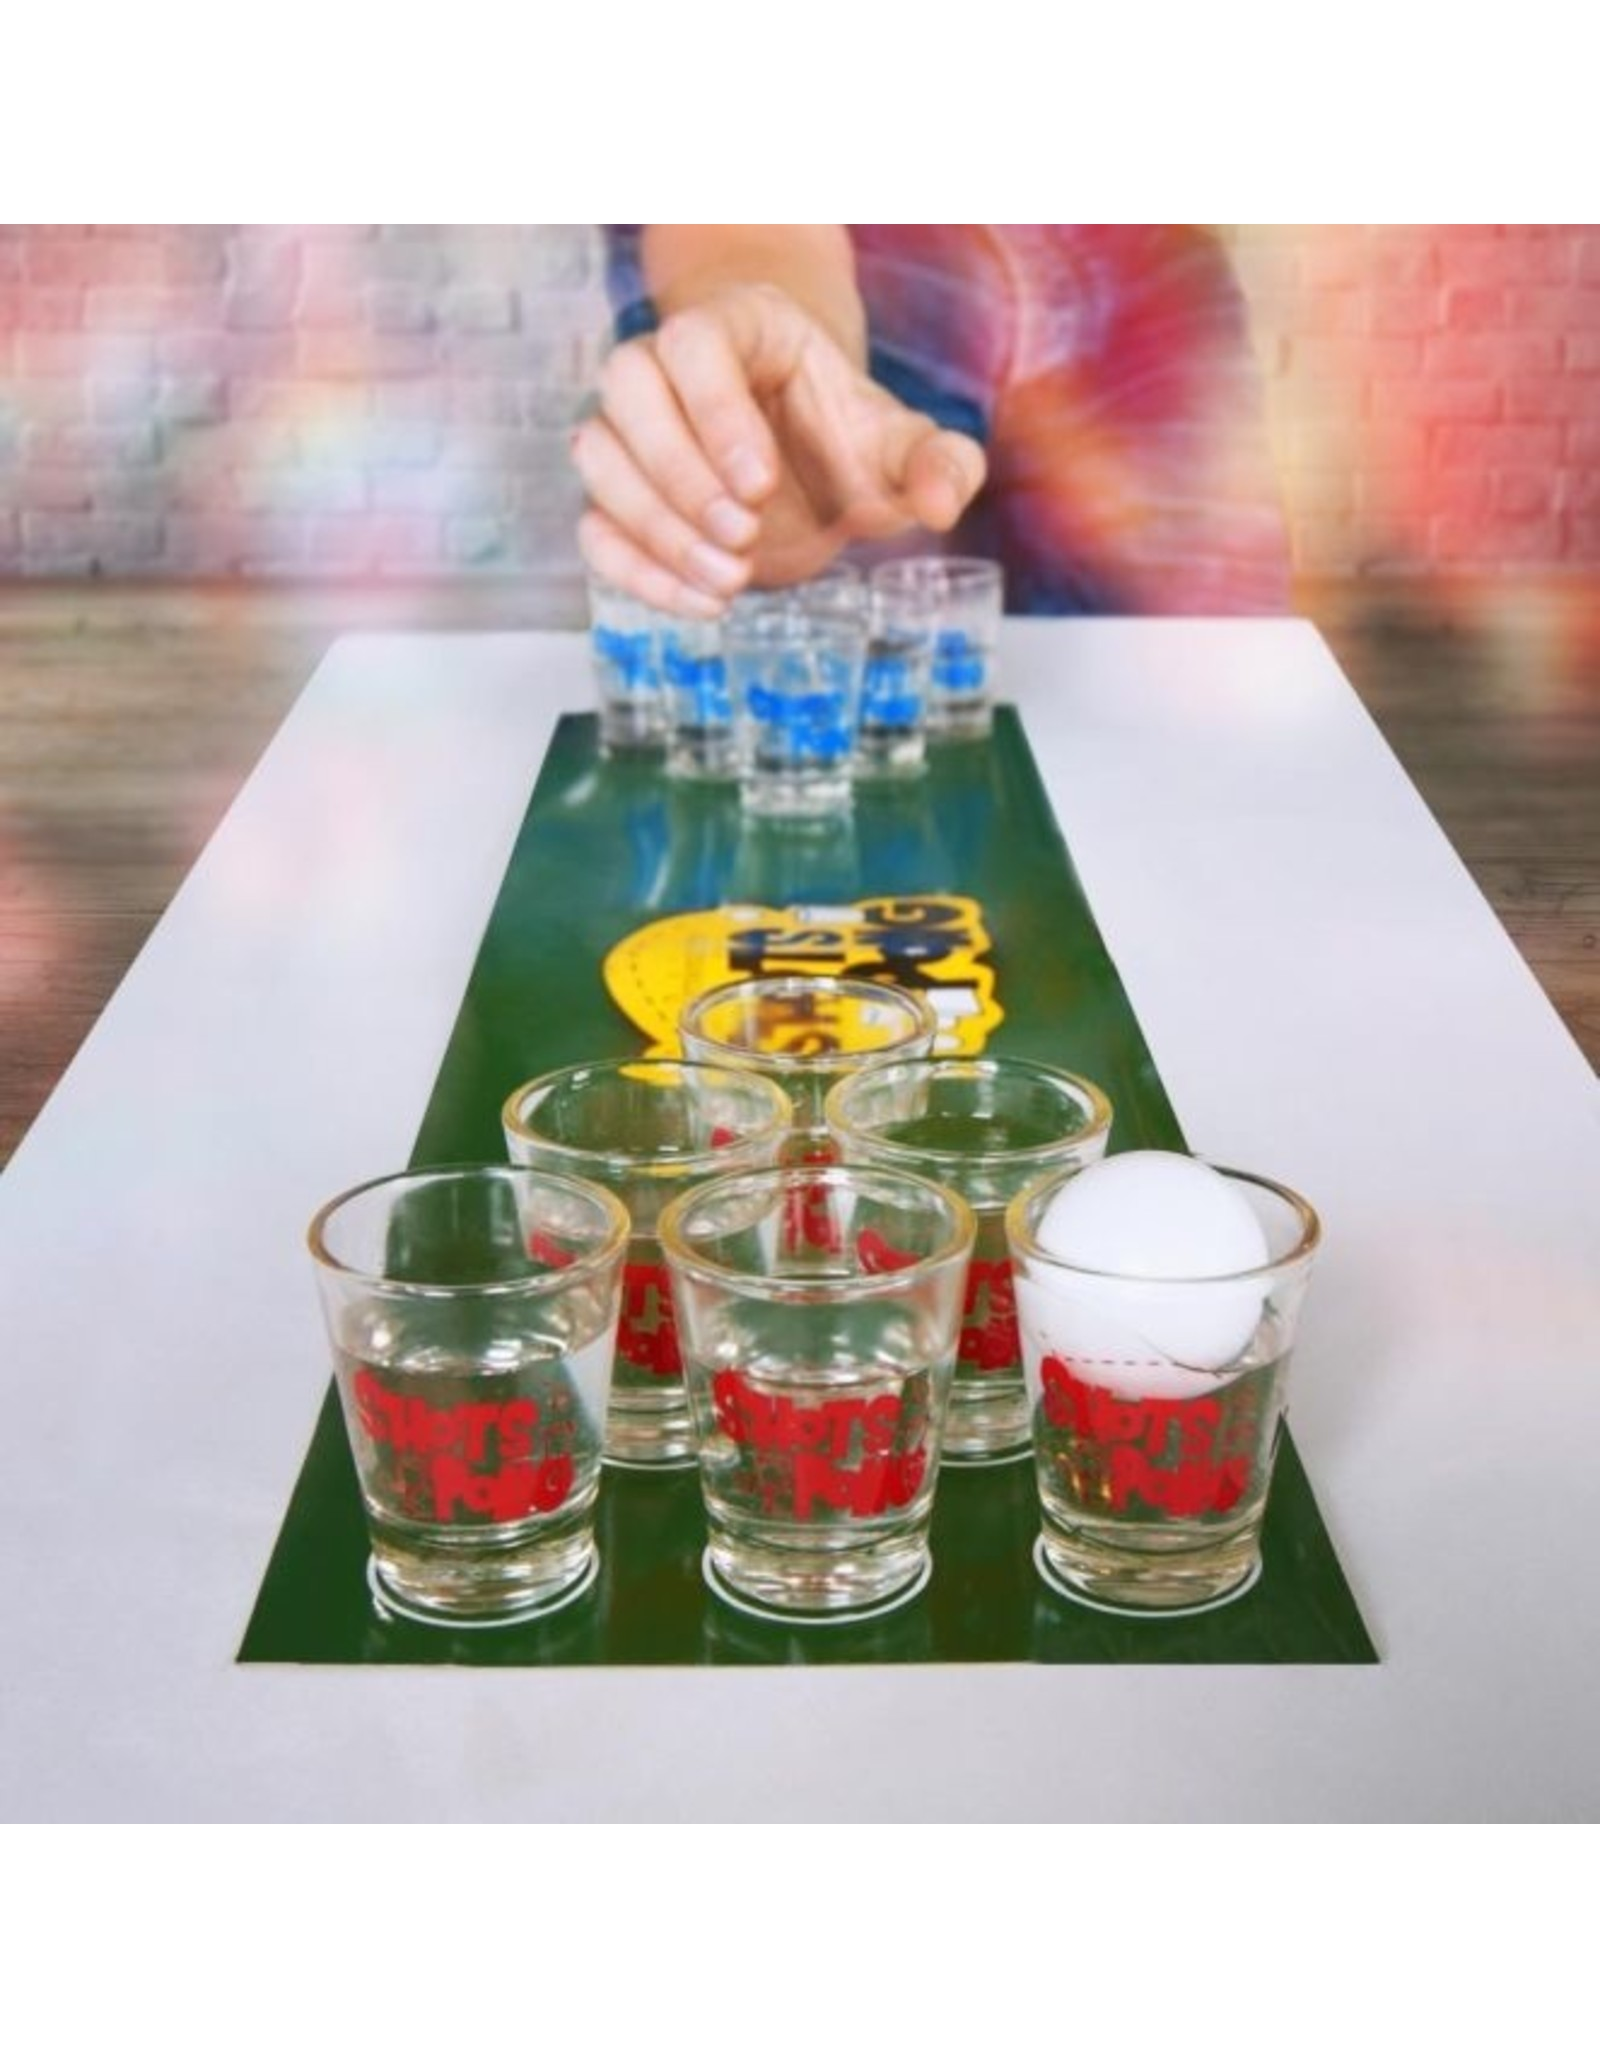 drinking game - shots pong